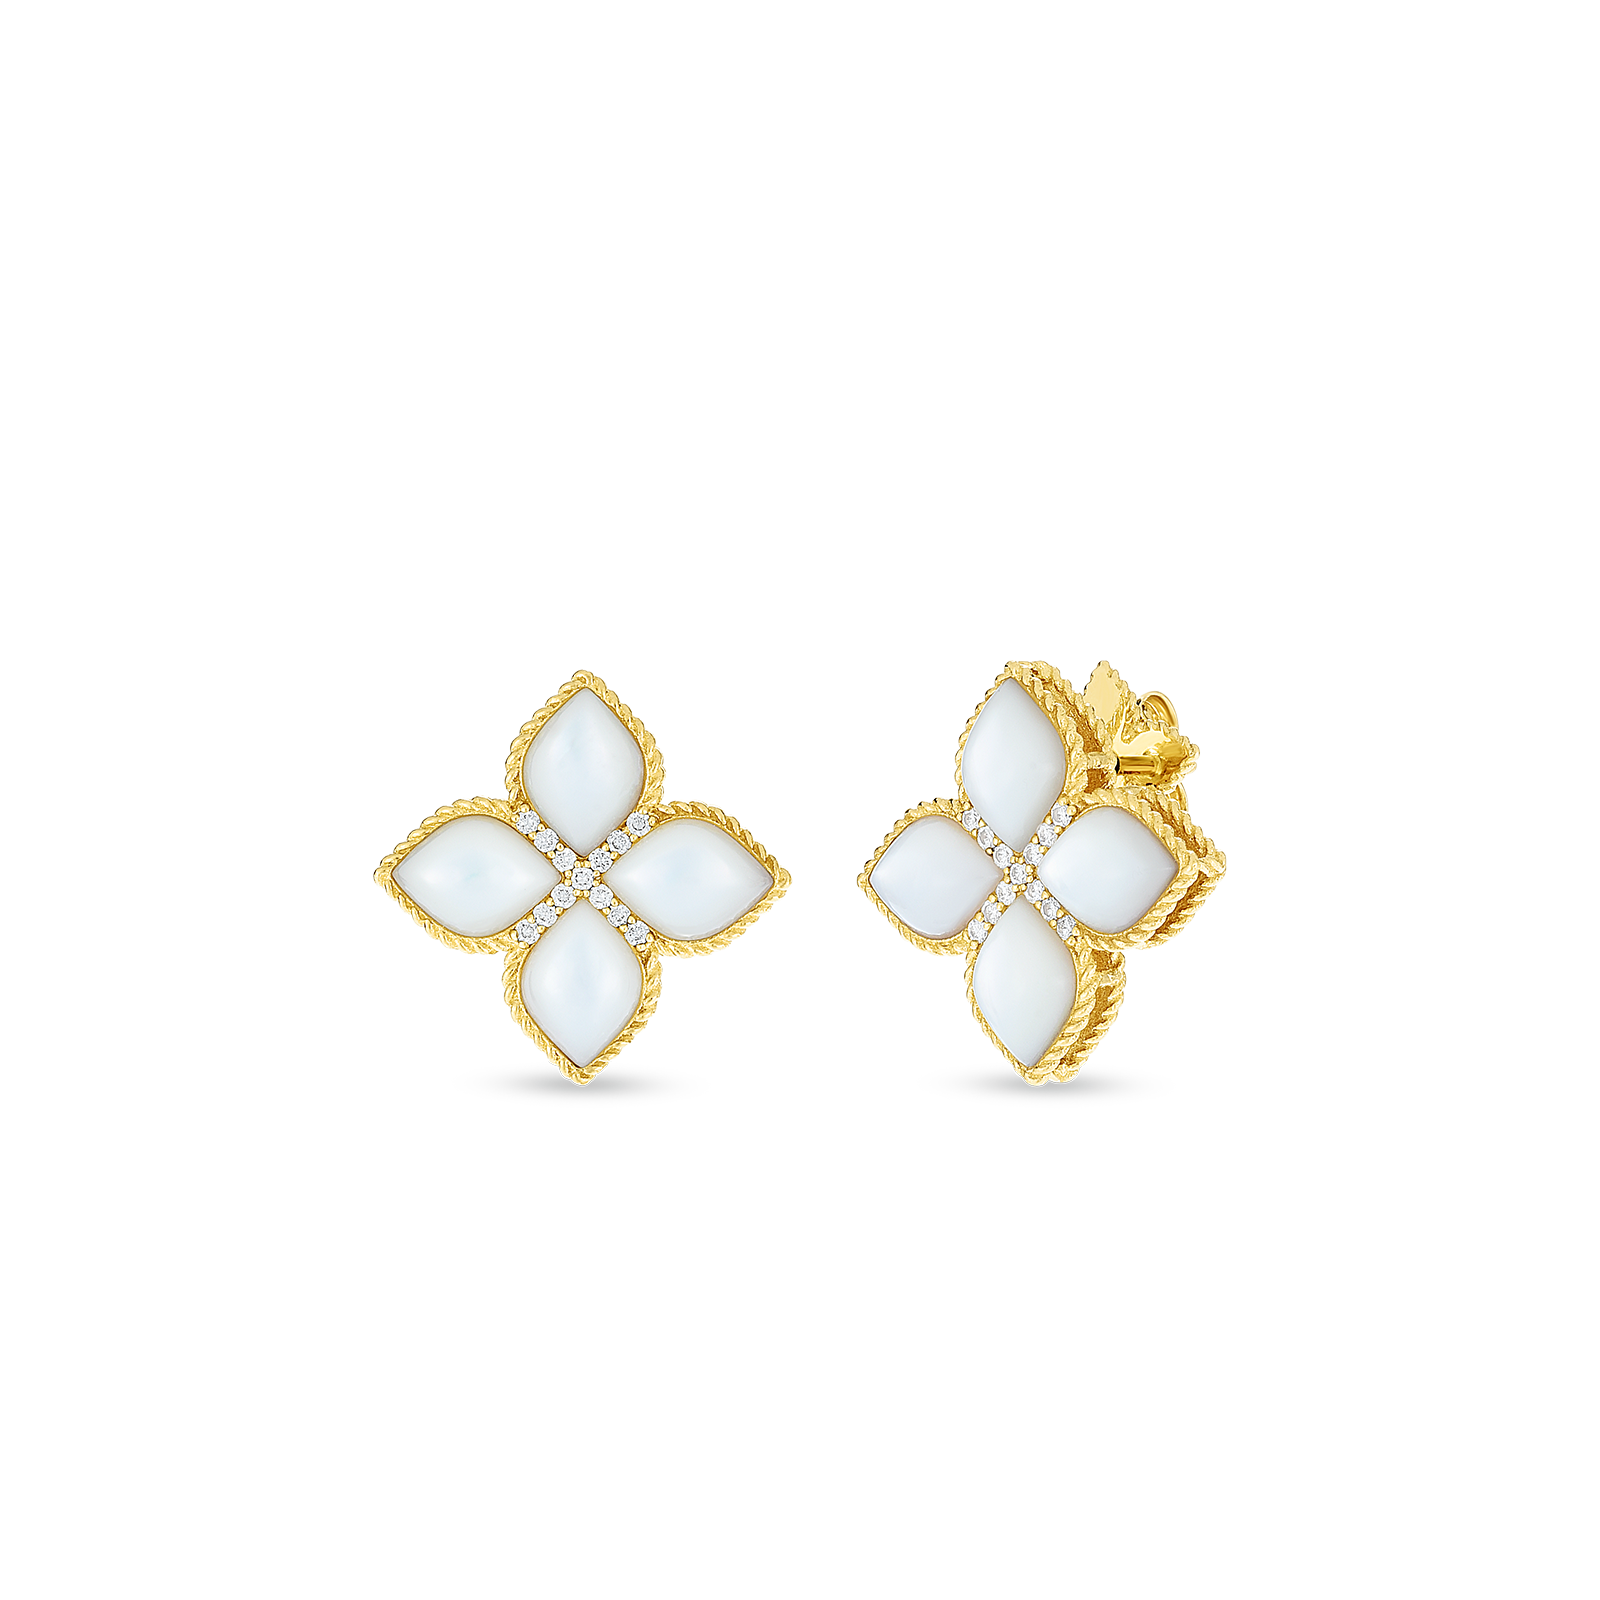 18kt large mother-of-pearl & diamond stud earring